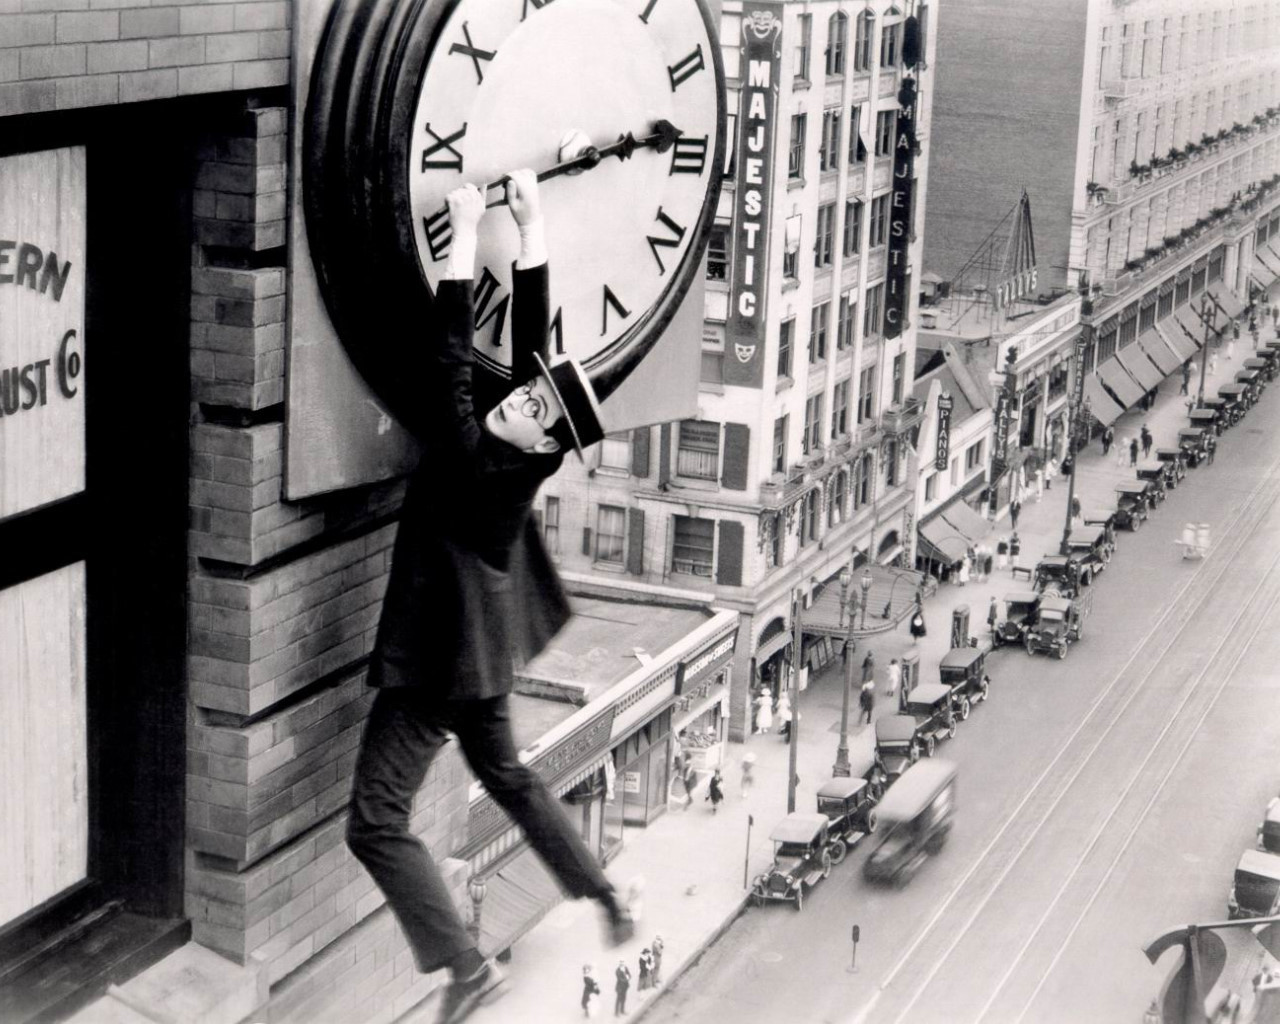 acehotel:  Harold Lloyd isn't trying to stop time in this famous scene from the 1923 silent comedy, Safety Last. The reason he's hanging from this clocktower involves a convoluted tale of trying to make good in the big city, impress the true love he left back in Smalltown and make a quick bundle by scaling a 12-story building so that the fictional DeVore Department Store on the ground floor can generate some buzz and ideally move the merch — all that Horatio Alger stuff that doesn't really change quite as much as it stays the same. The minute hand Harold's holding onto over Broadway belongs to what is now the Sparkle Factory, owned by our good friend Tarina Tarantino, and stands across the street from the future Ace Hotel Downtown Los Angeles. The marquee you see in Harry's background is for the former Majestic Theatre. By all accounts, it lived up to its name until it was demolished in 1933. While it's too bad the Majestic couldn't make it to the present in its physical form, we're glad Harold's literal take on social climbing managed to stop the clock and preserve its memory forever.